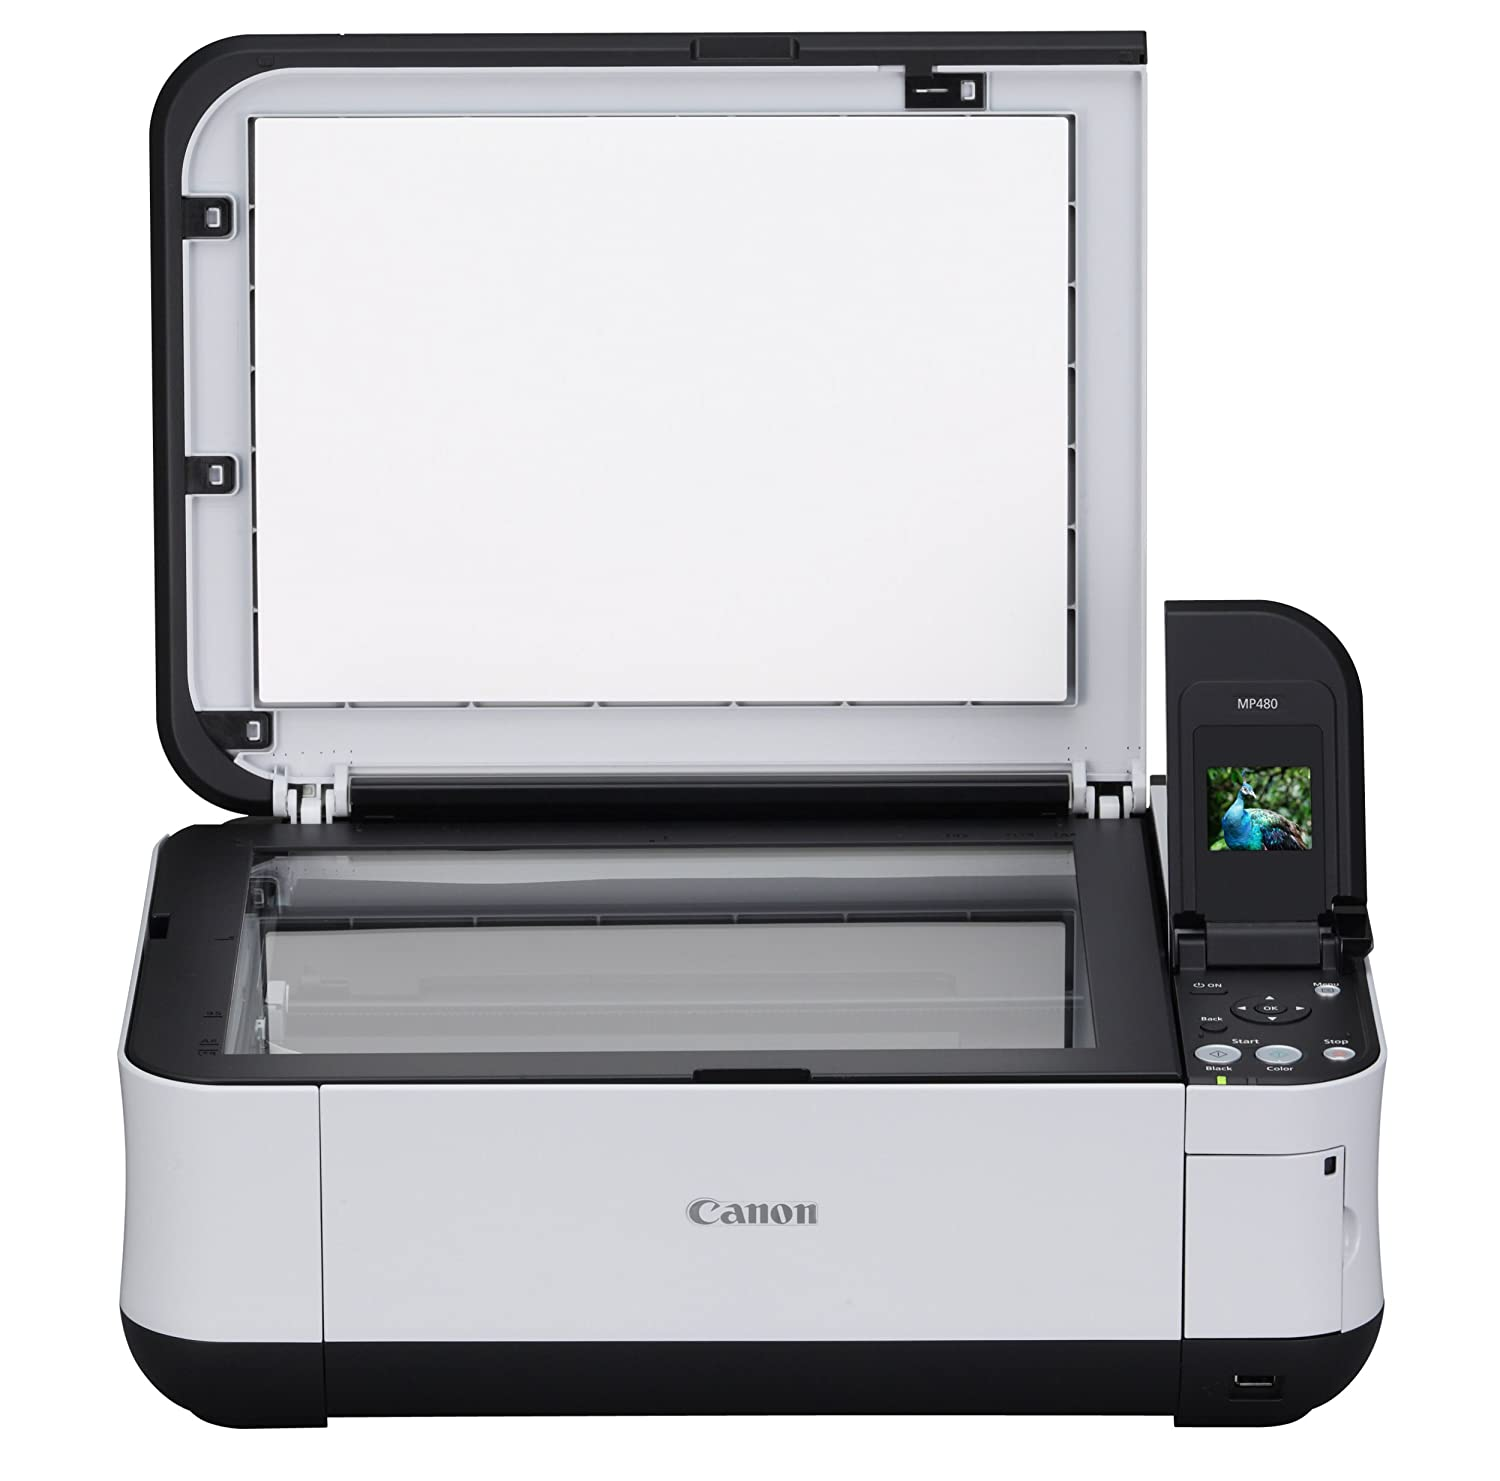 MP480 PRINTER DESCARGAR CONTROLADOR